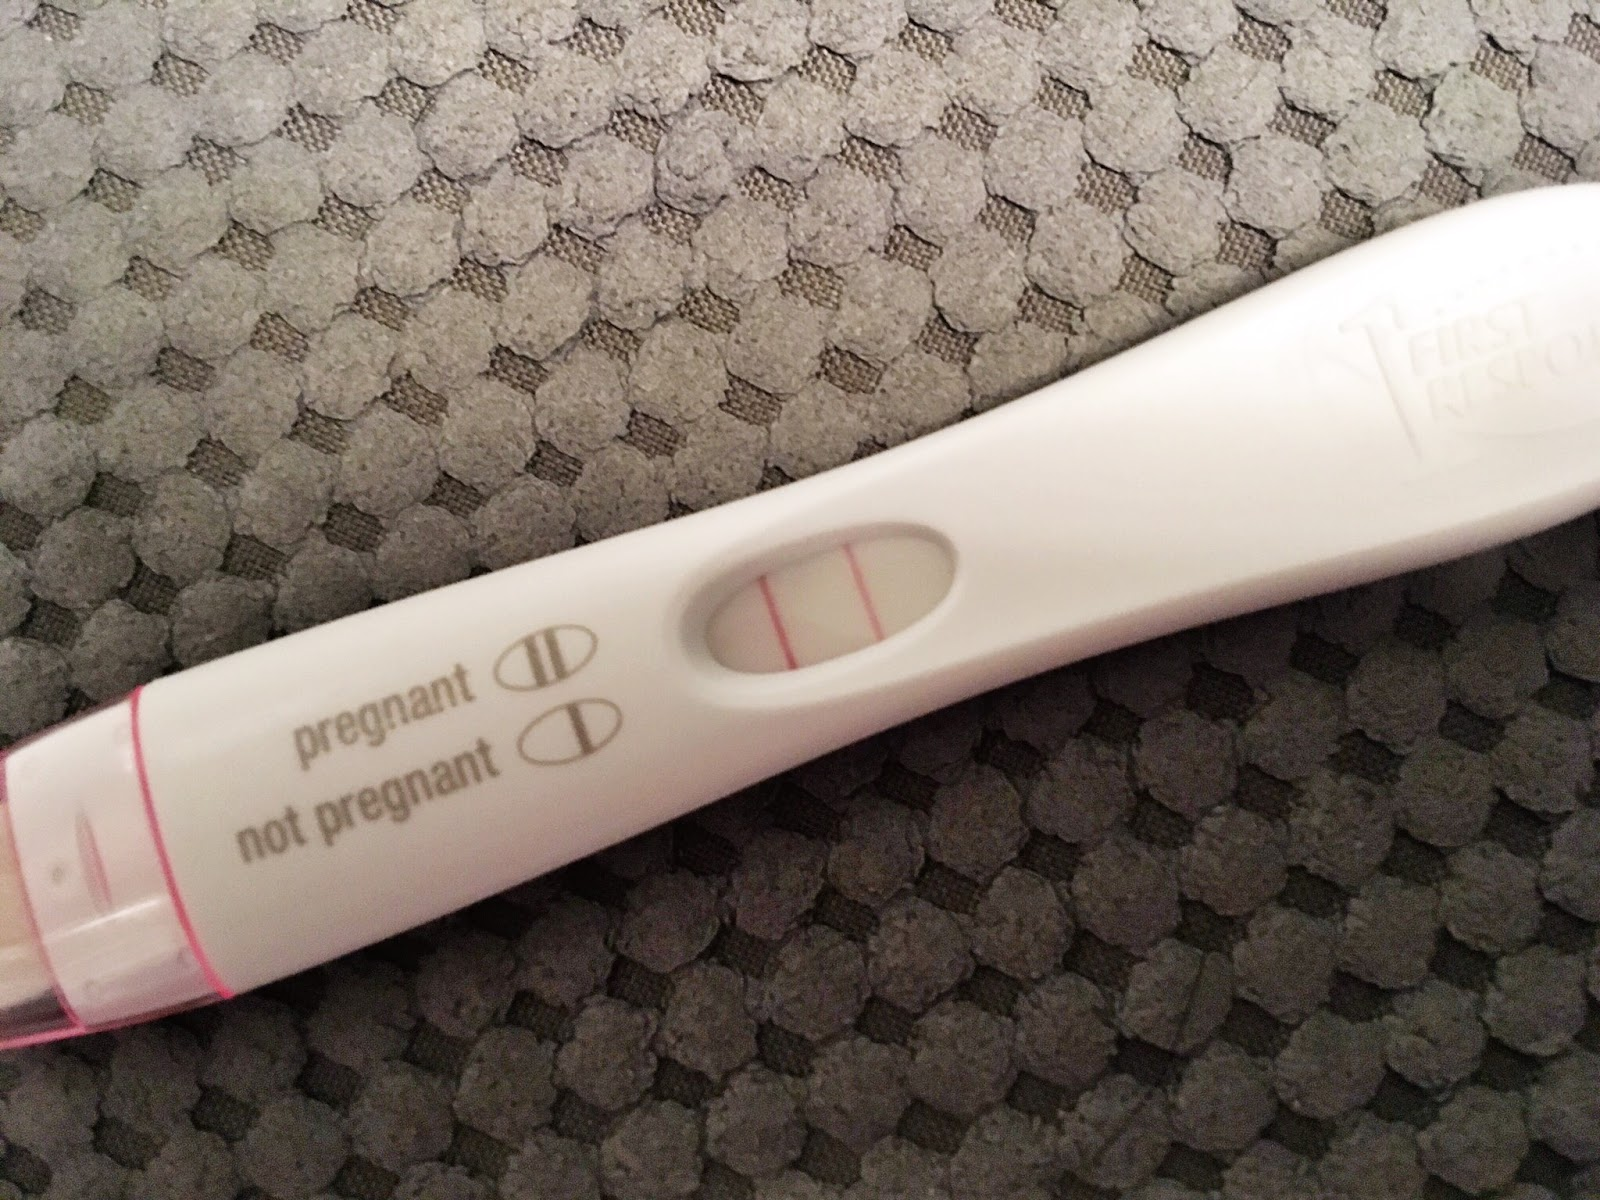 klonopin and pregnancy test